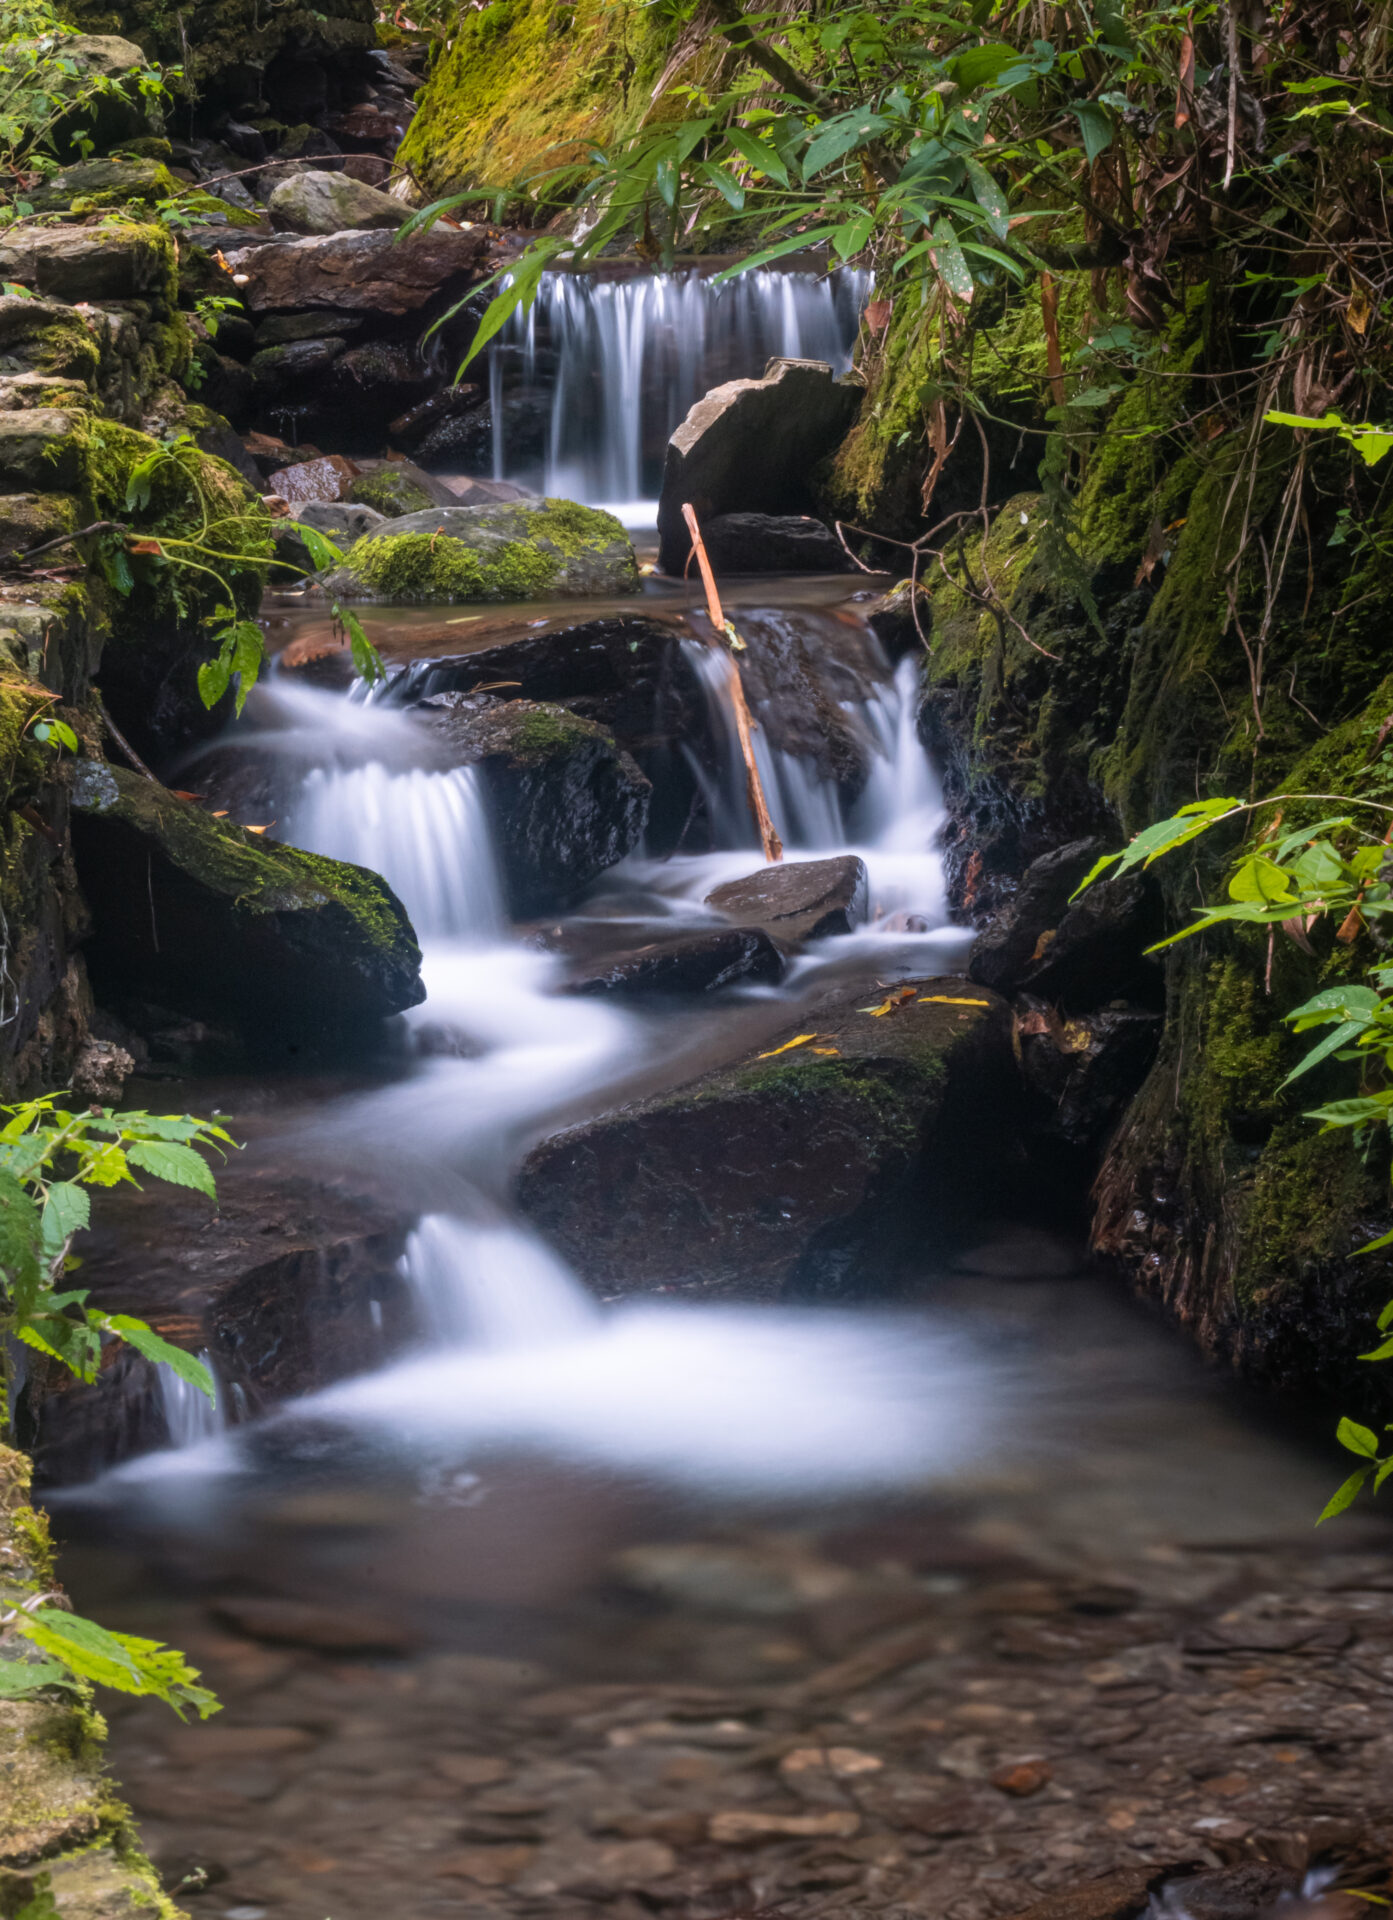 The Stream of the water flowing just near the waterfall